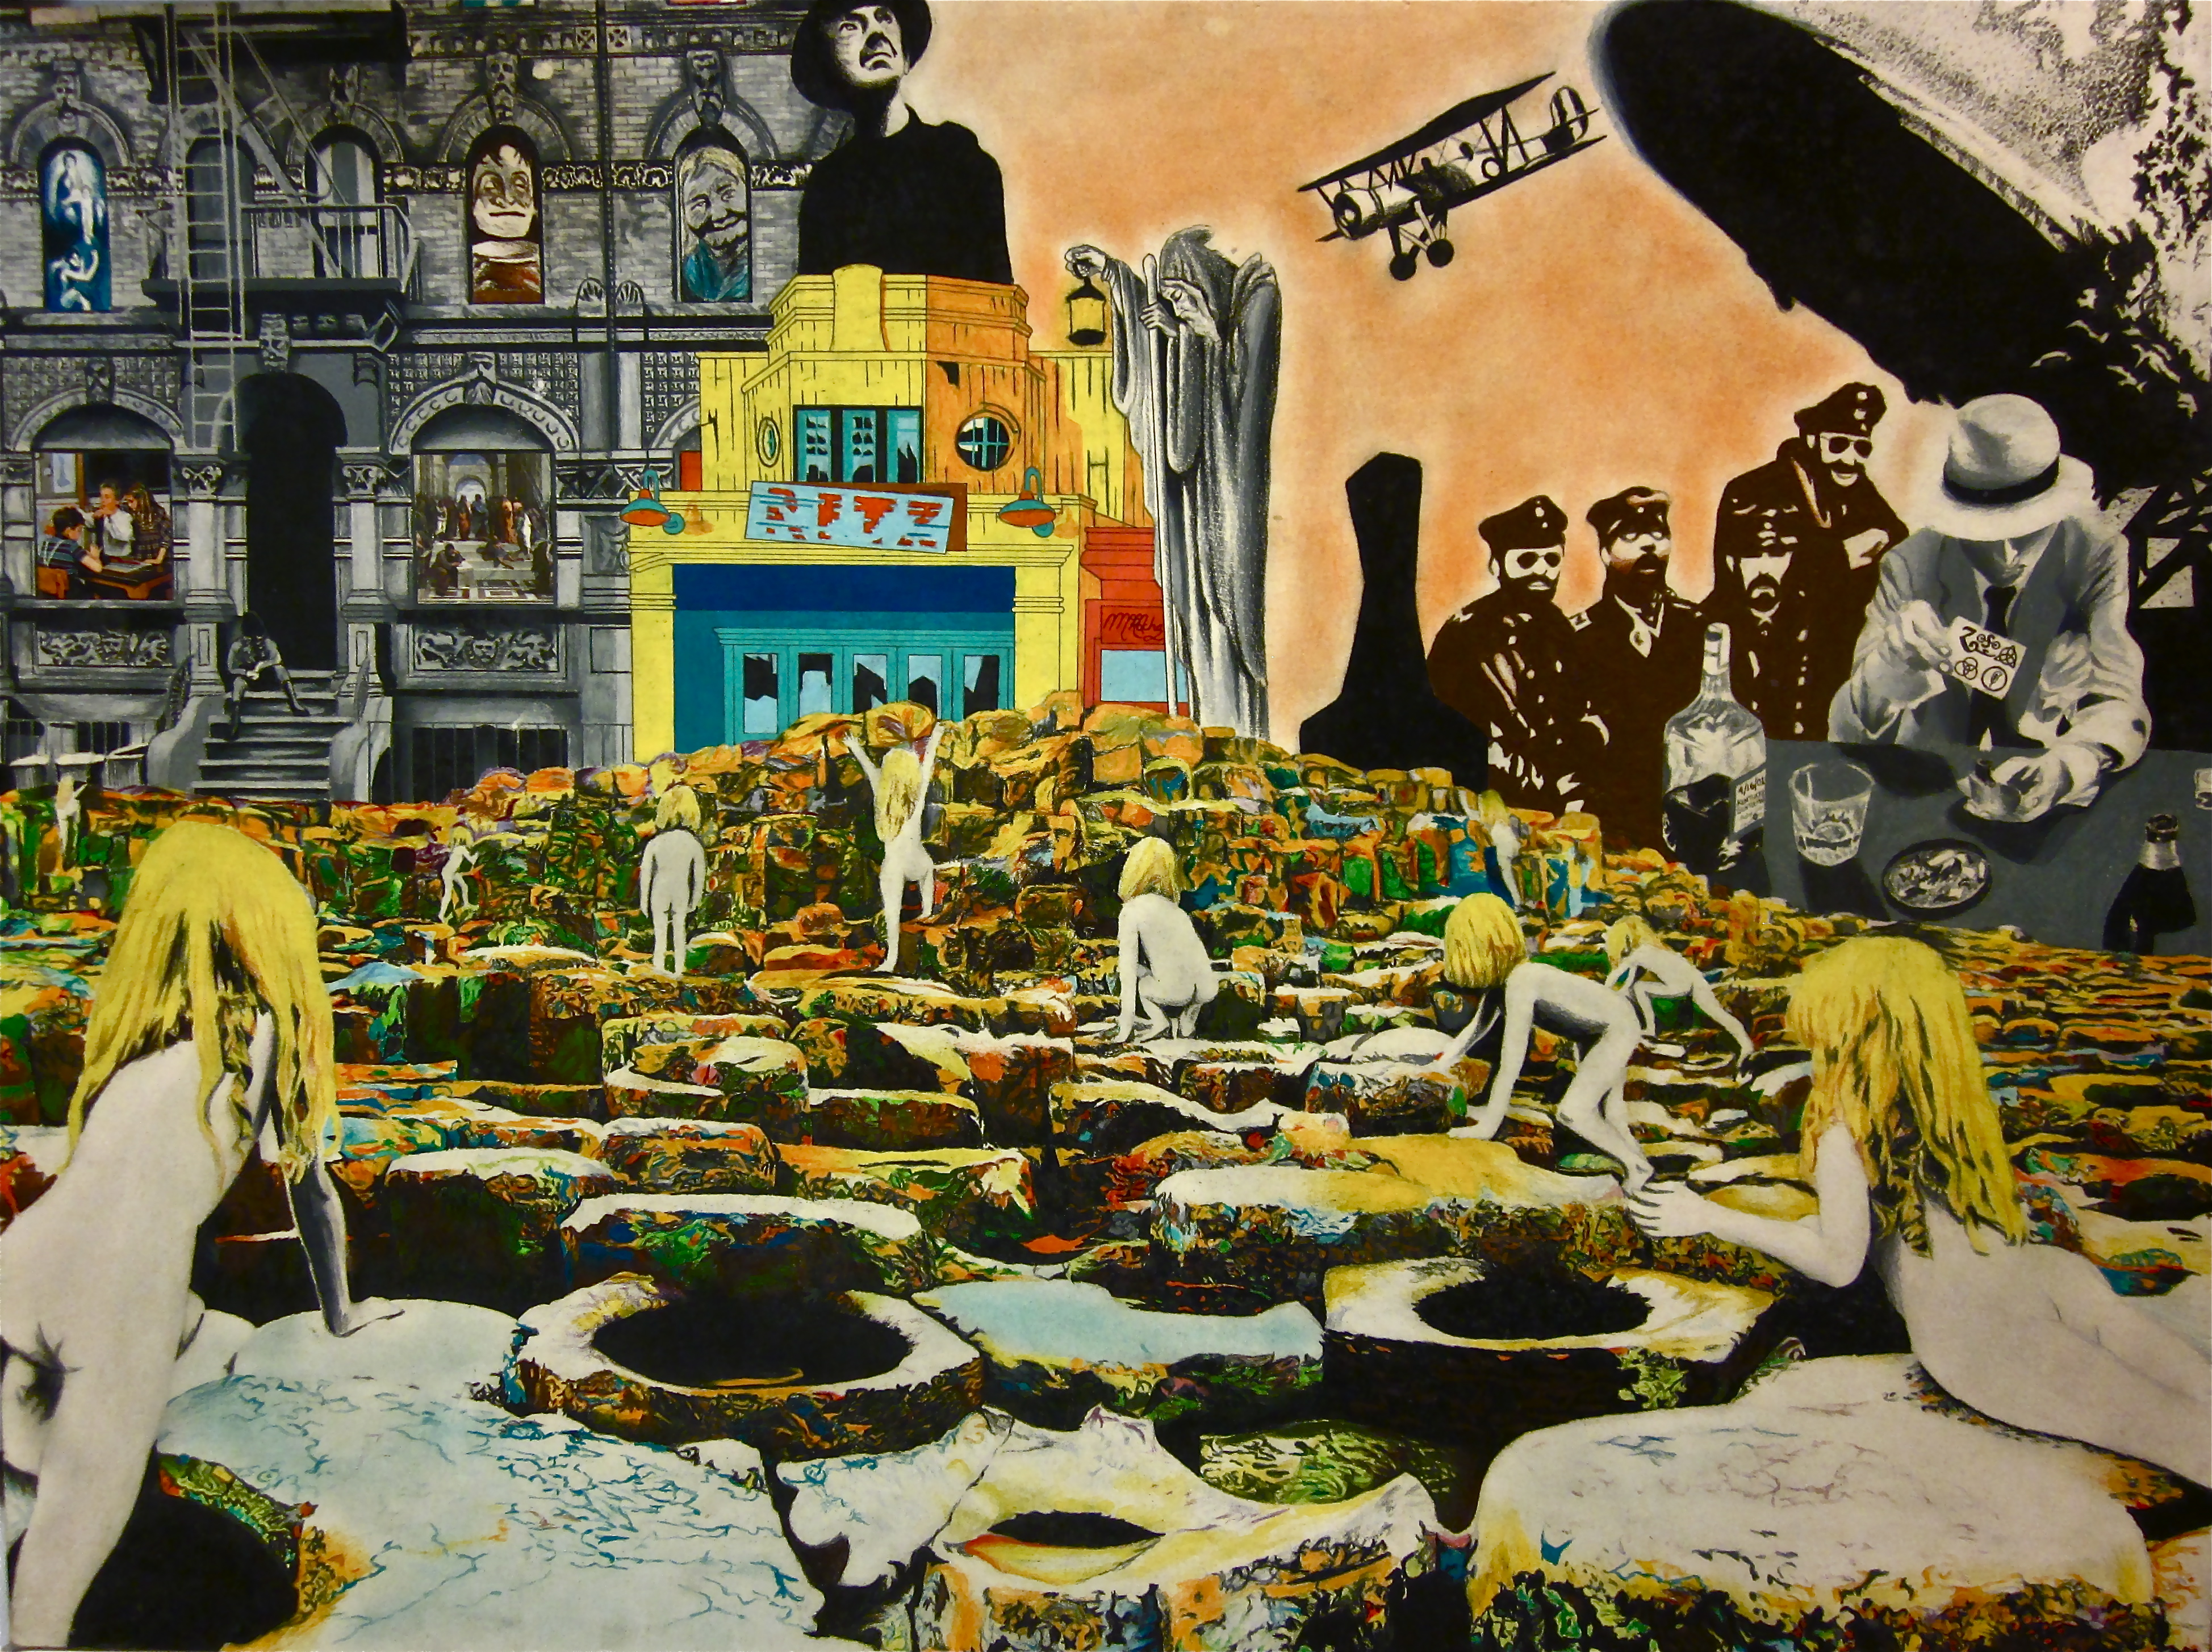 Led Zeppelin Collage Their album covers by rochafeller on